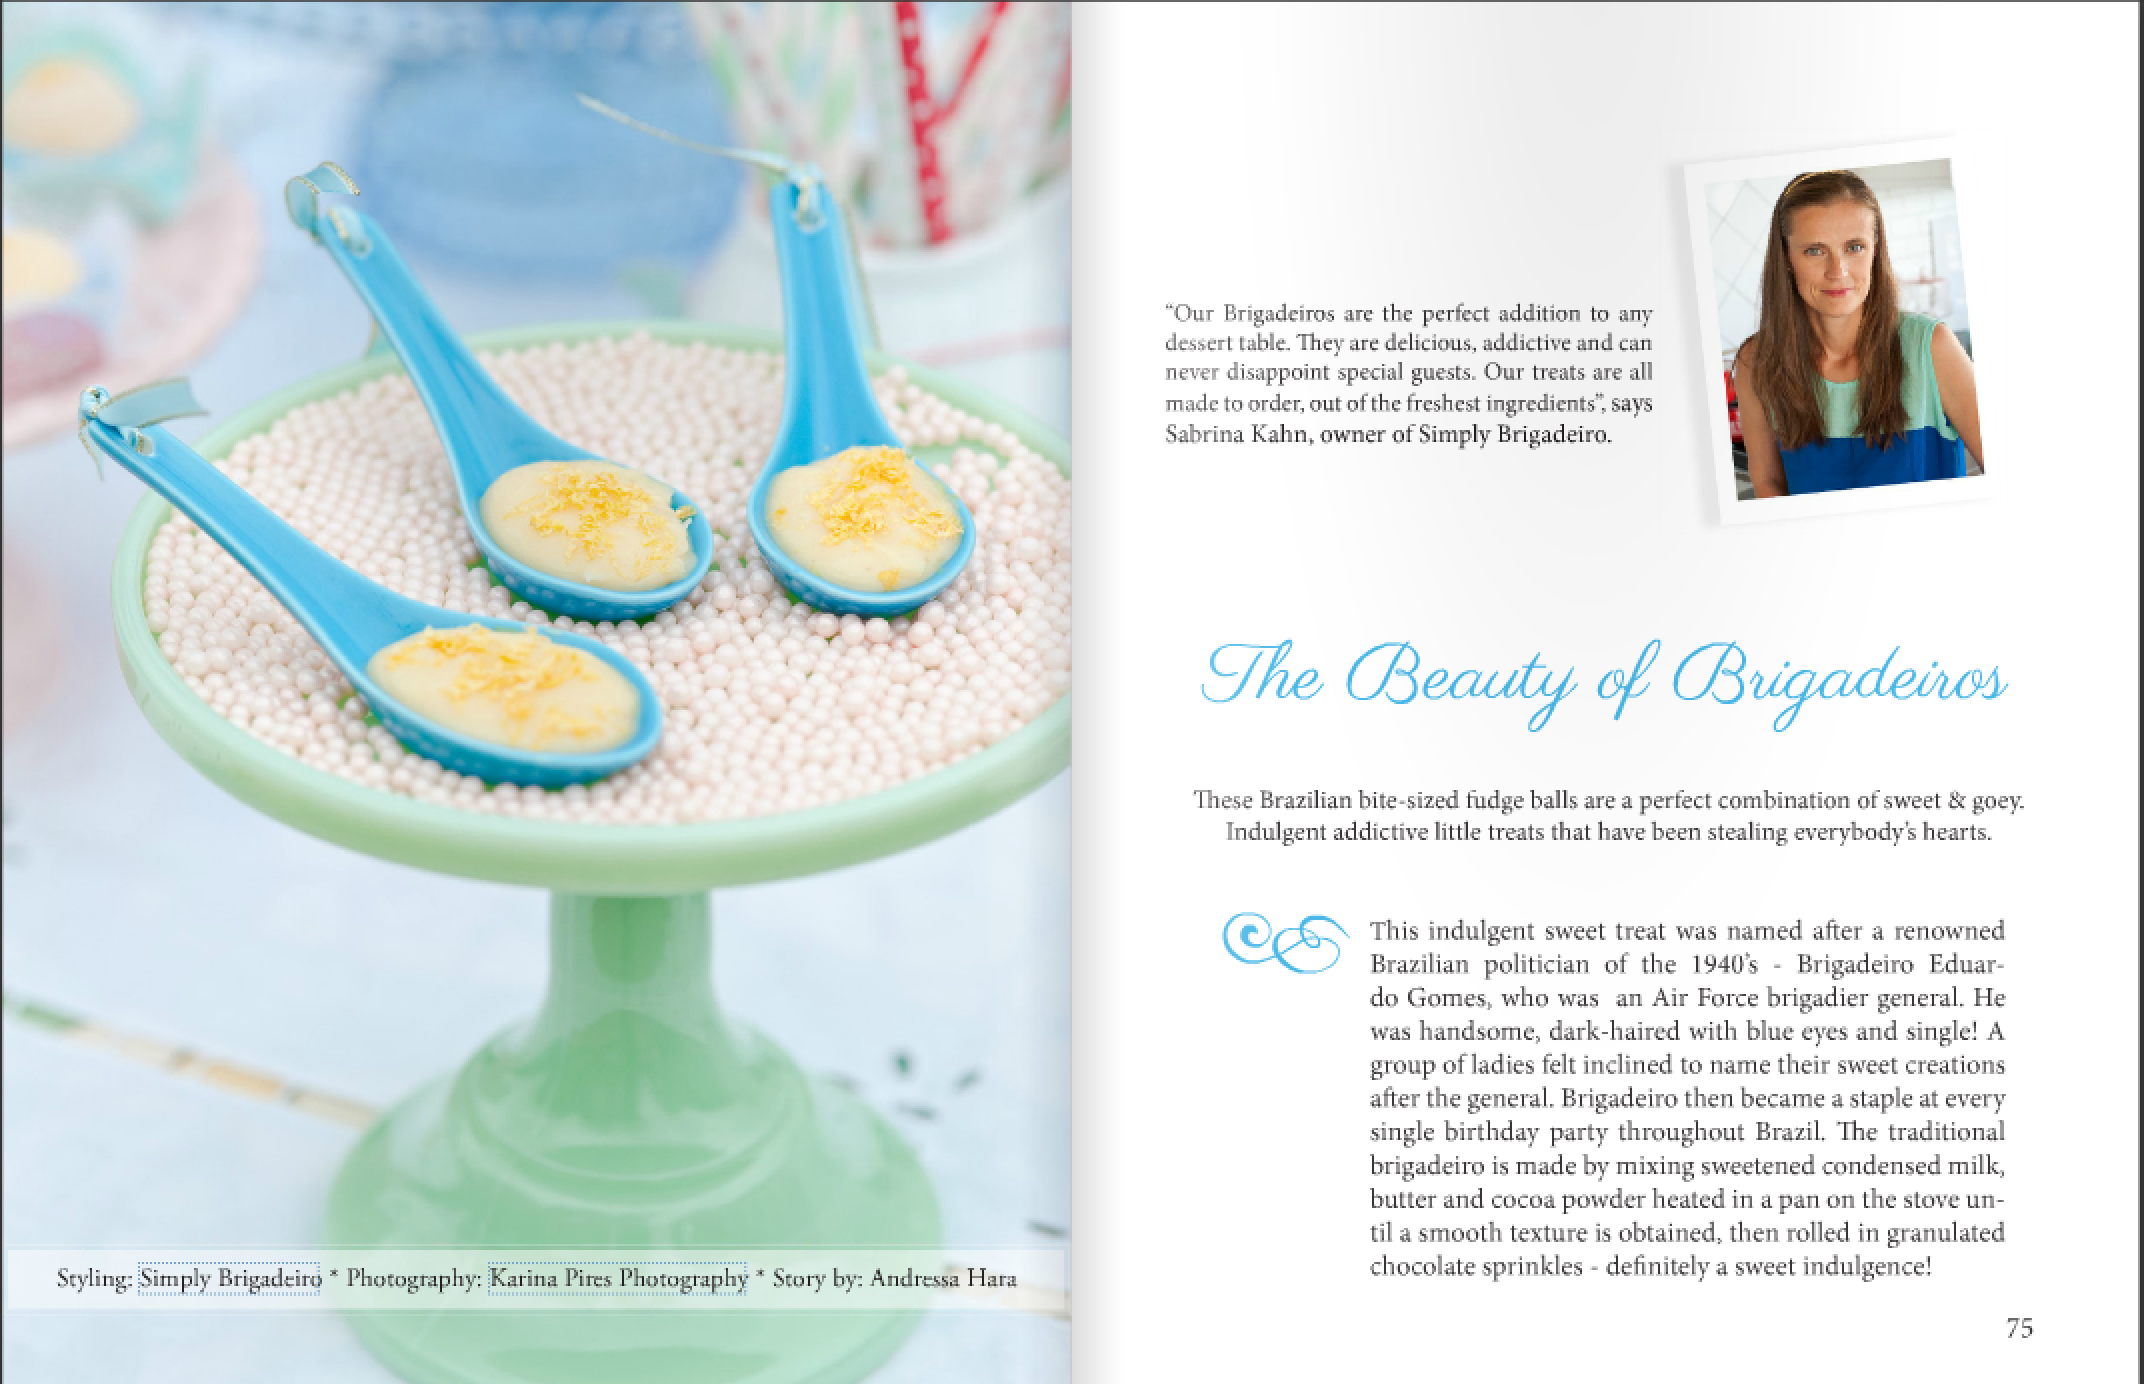 Twinkle-Twinkle-Little-Party-Magazine-Simply-Brigadeiro.png